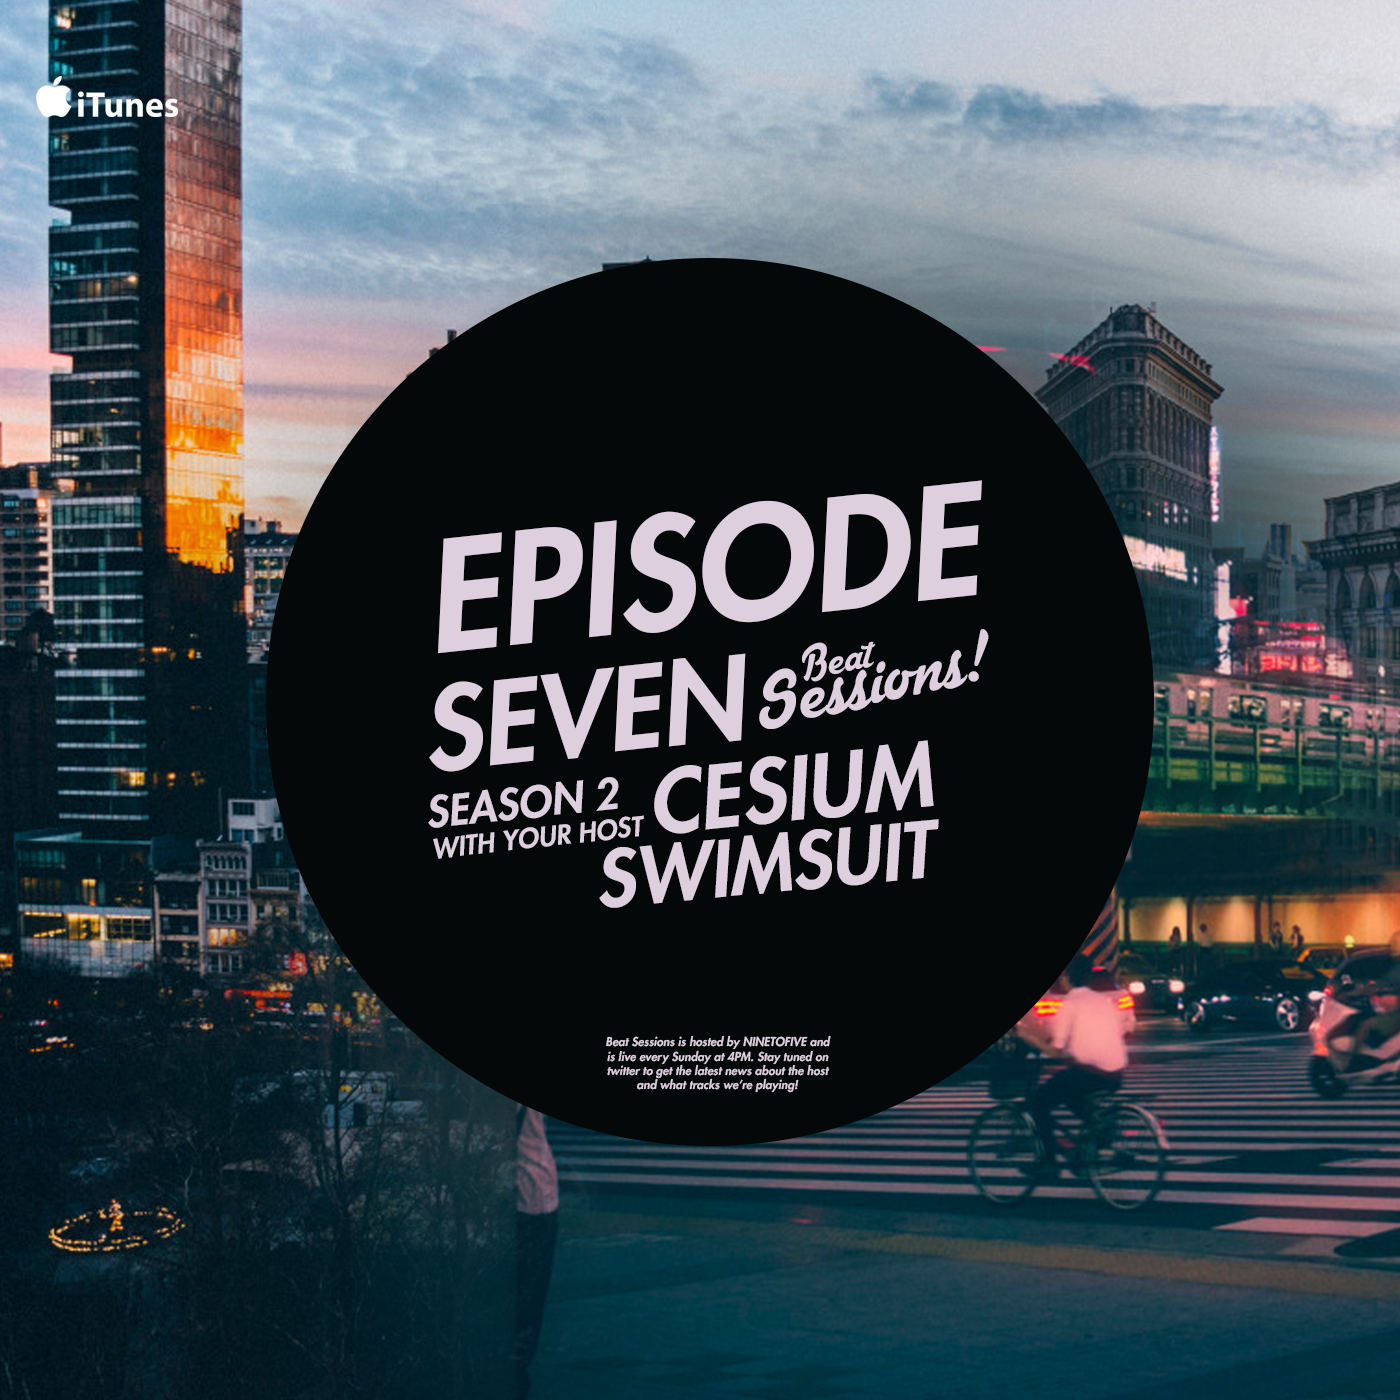 Beat Sessions: S02E07 with Cesium Swimsuit.